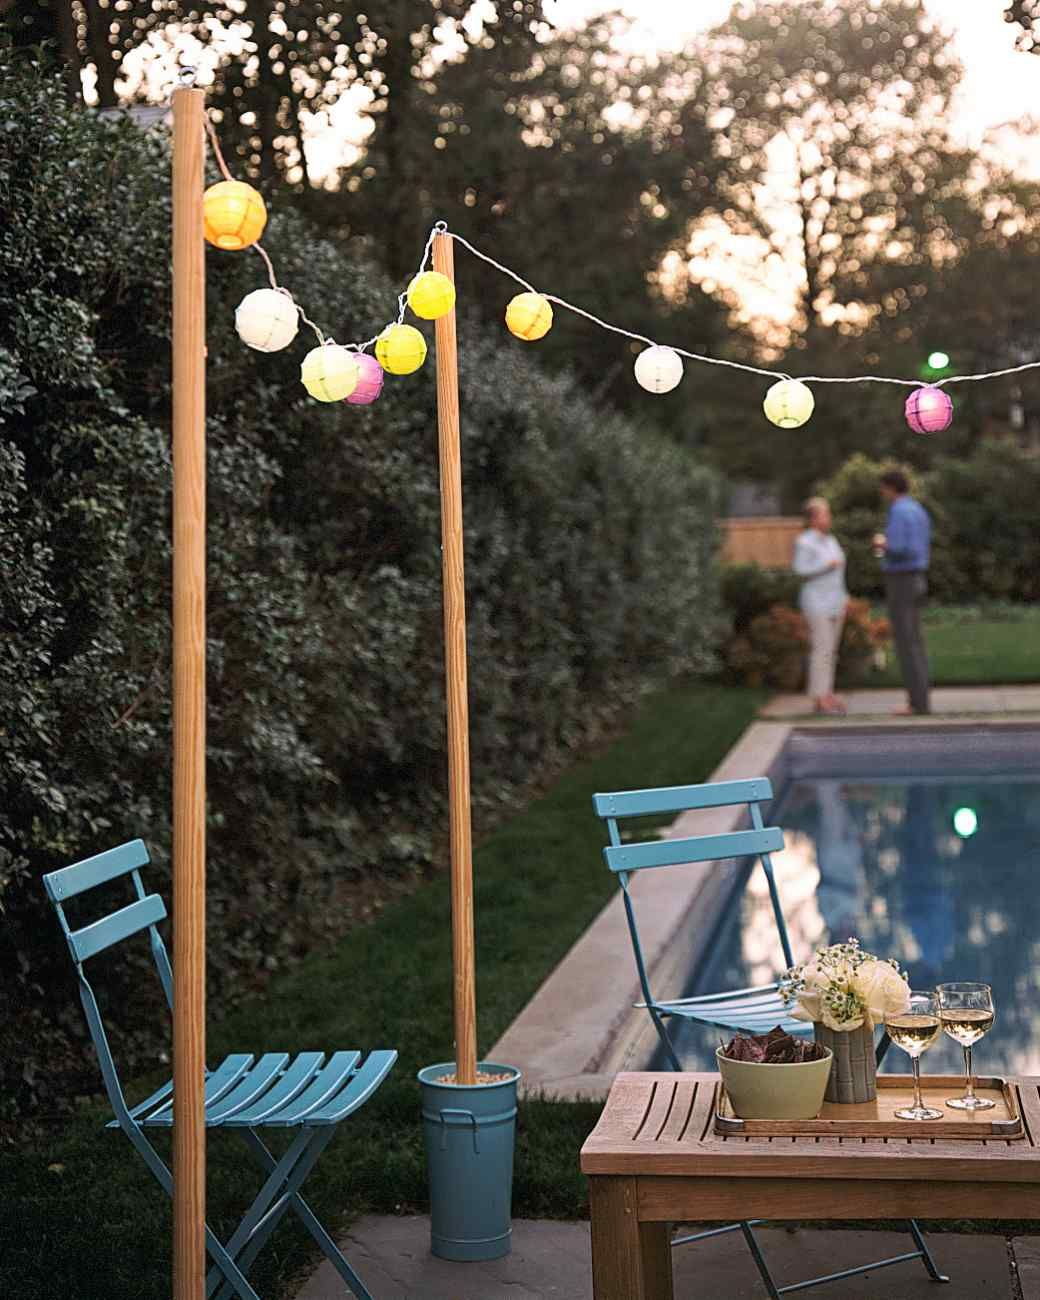 garden party lights diy. garden-glow lanterns don\u0027t have a place to hang lights? wooden poles anchored in flower buckets filled with garden gravel can be set up anywhere there\u0027s party lights diy